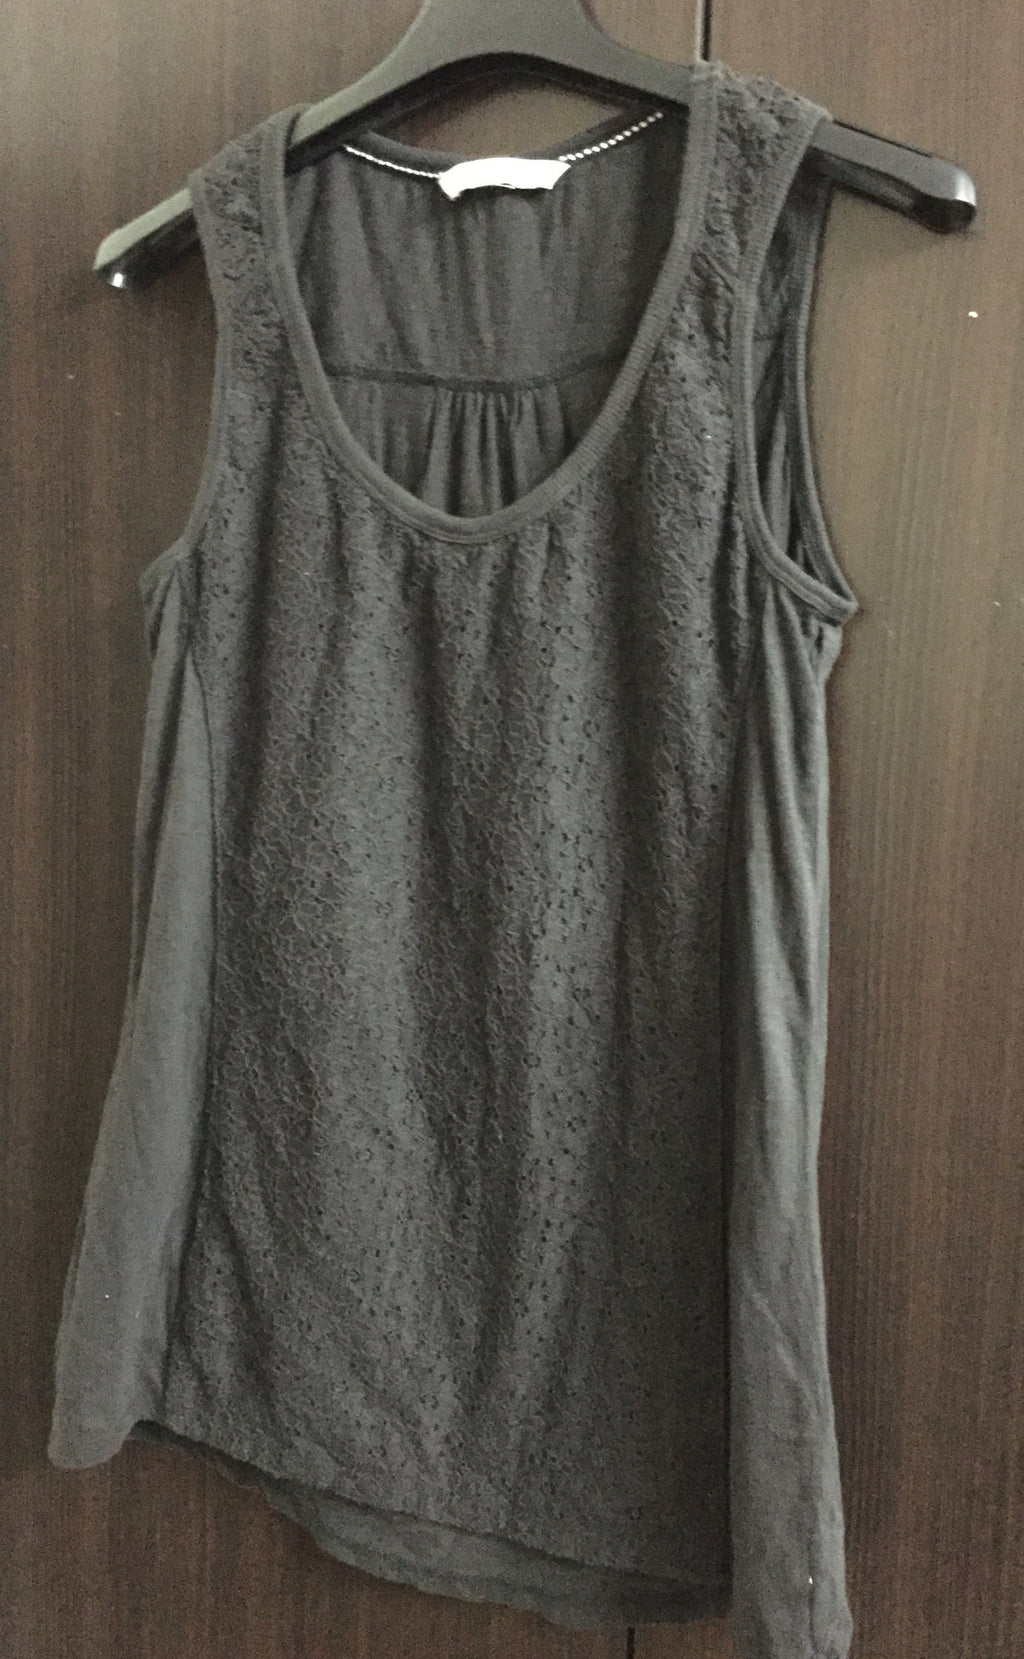 Comfy Fit Black Sleeveless Top